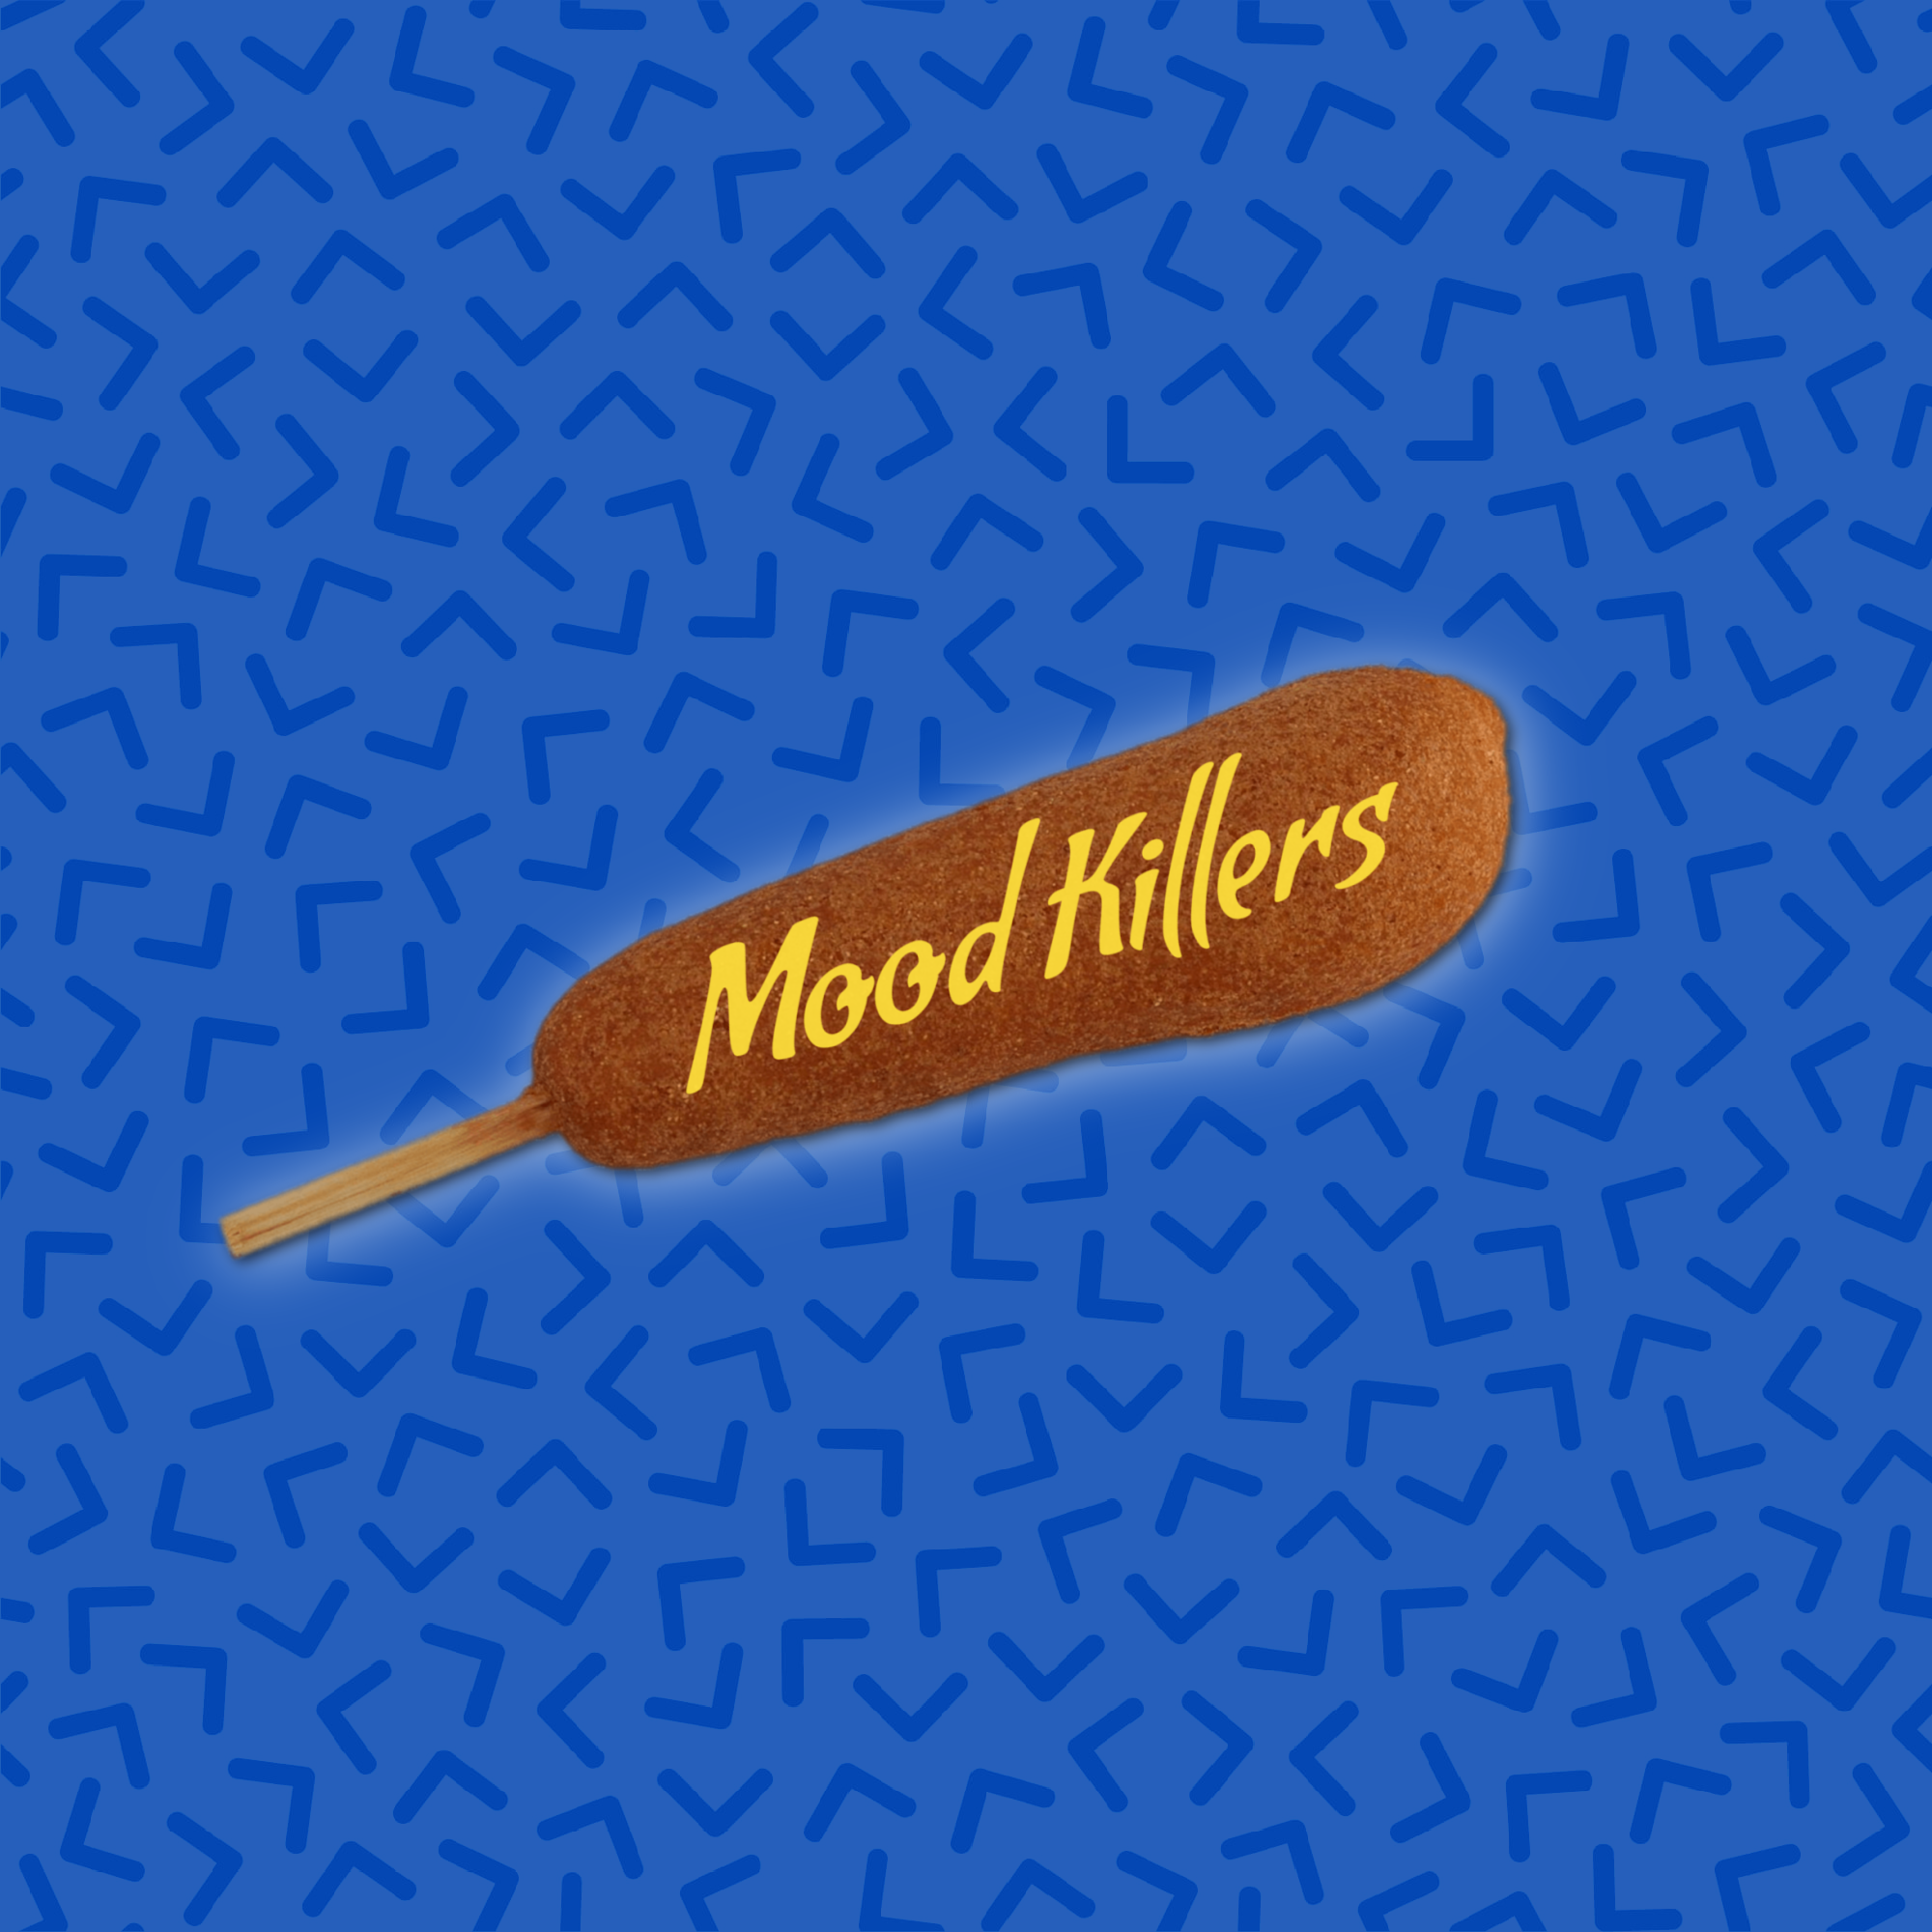 Art for Dino Nuggets by mood killers